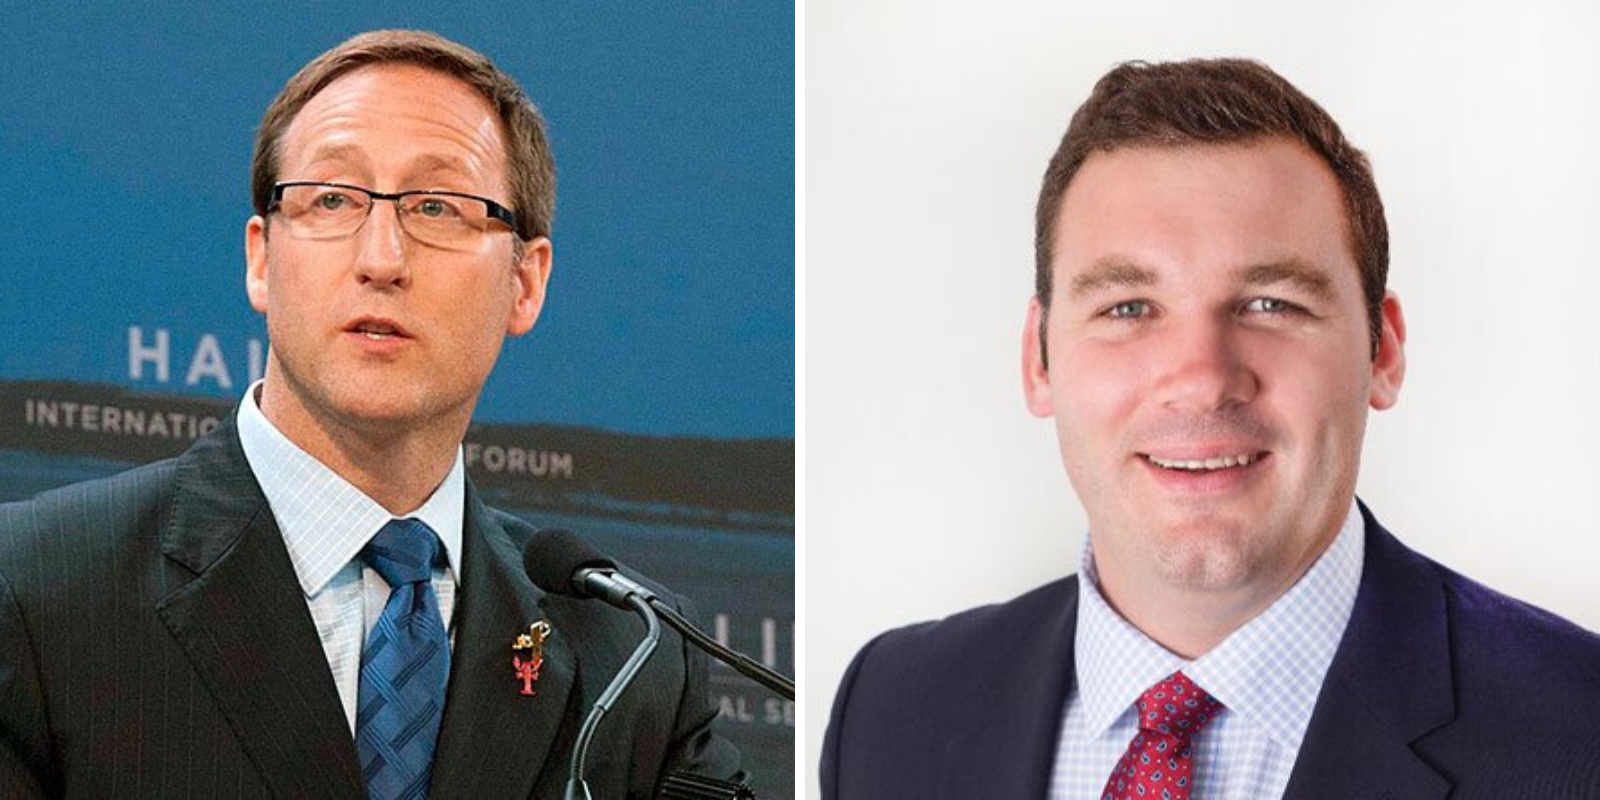 MacKay's campaign manager forced to apologize over pipeline tweet